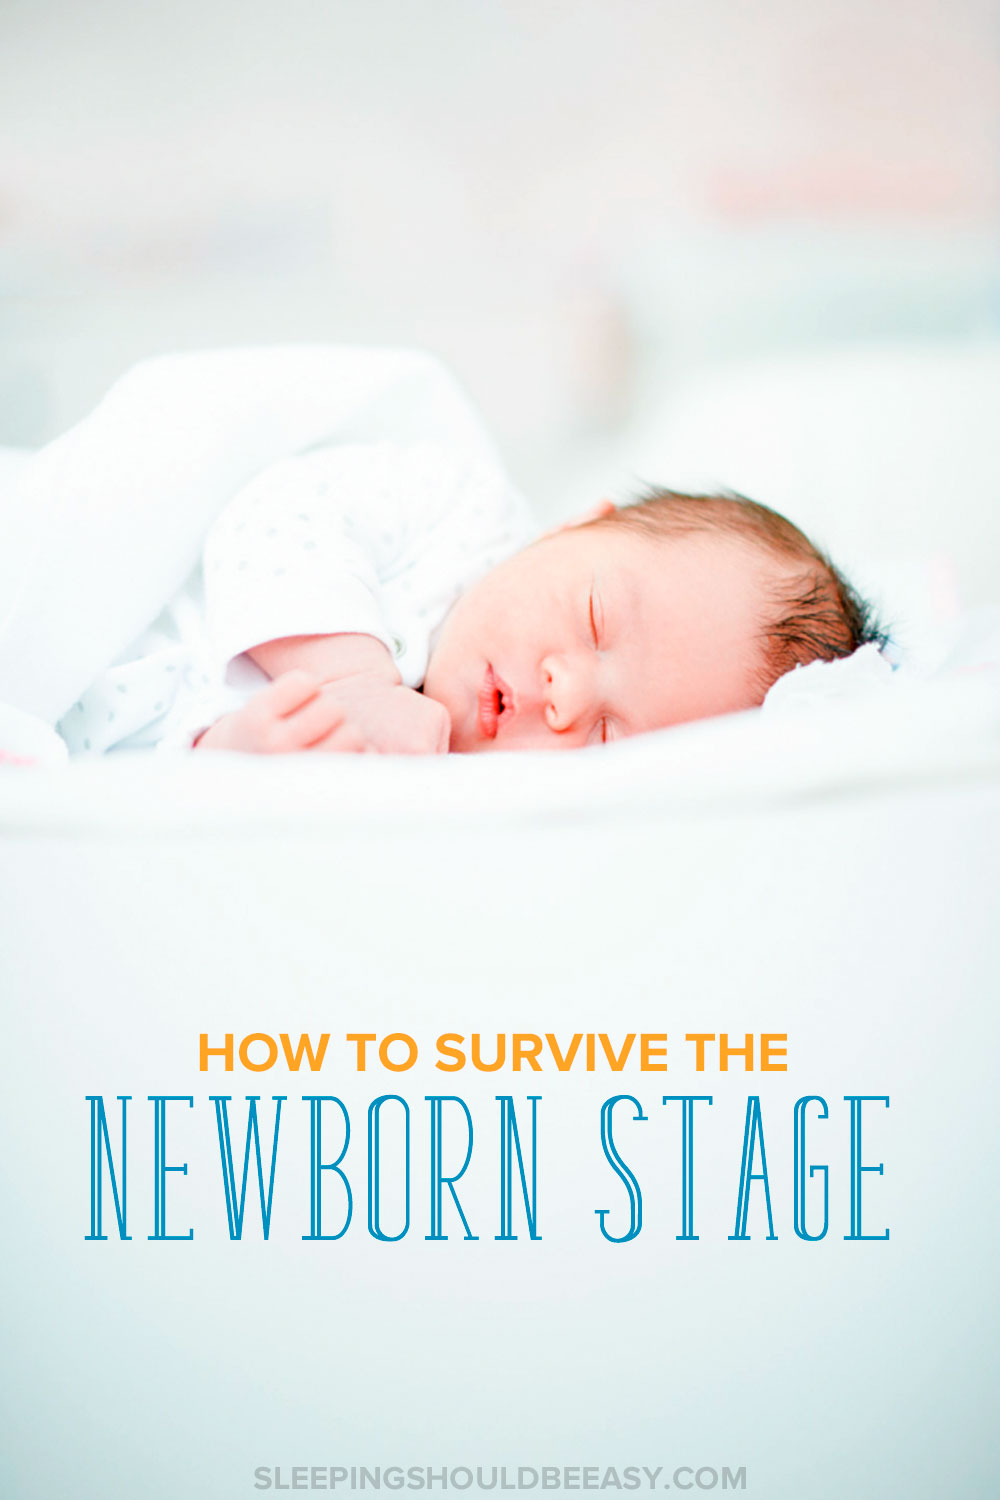 Excellent tips for new moms on how to survive the newborn stage! As a first-time mom, I had no idea if this would get any better. But I learned to apply certain techniques to make those months much easier. Even includes a FREE printable tracker to record feedings and diaper changes! Click here to learn how to take the stress out of the #newborn stage! #newbornbaby